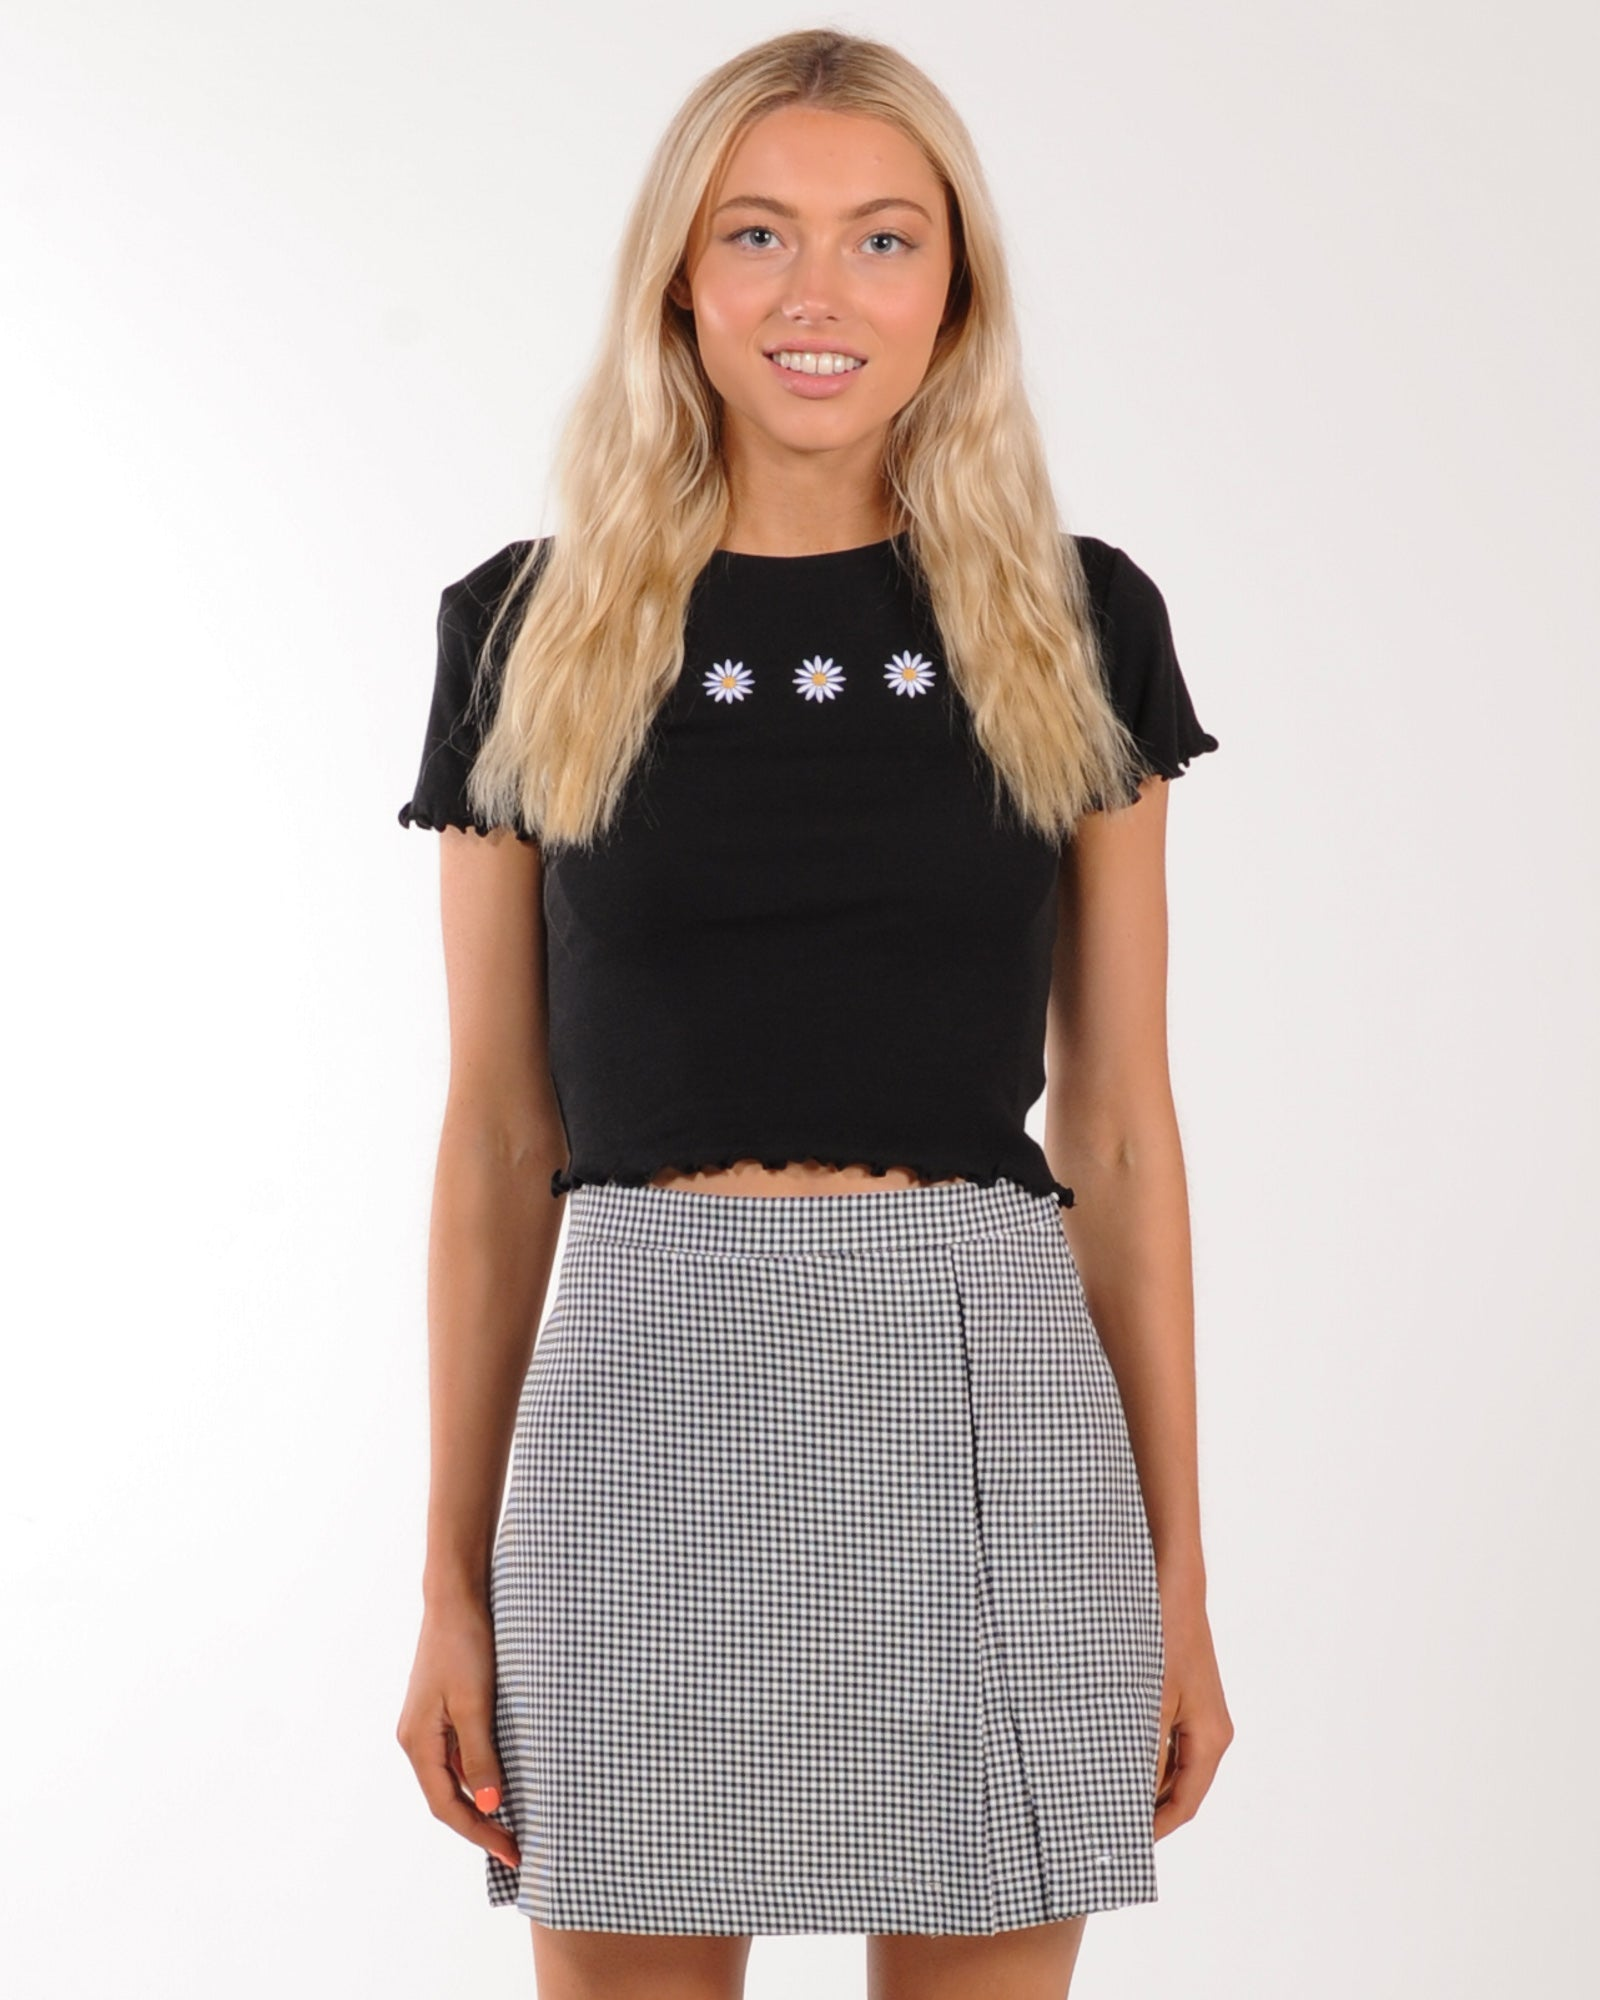 All About Eve Daisy Days Tee - Black